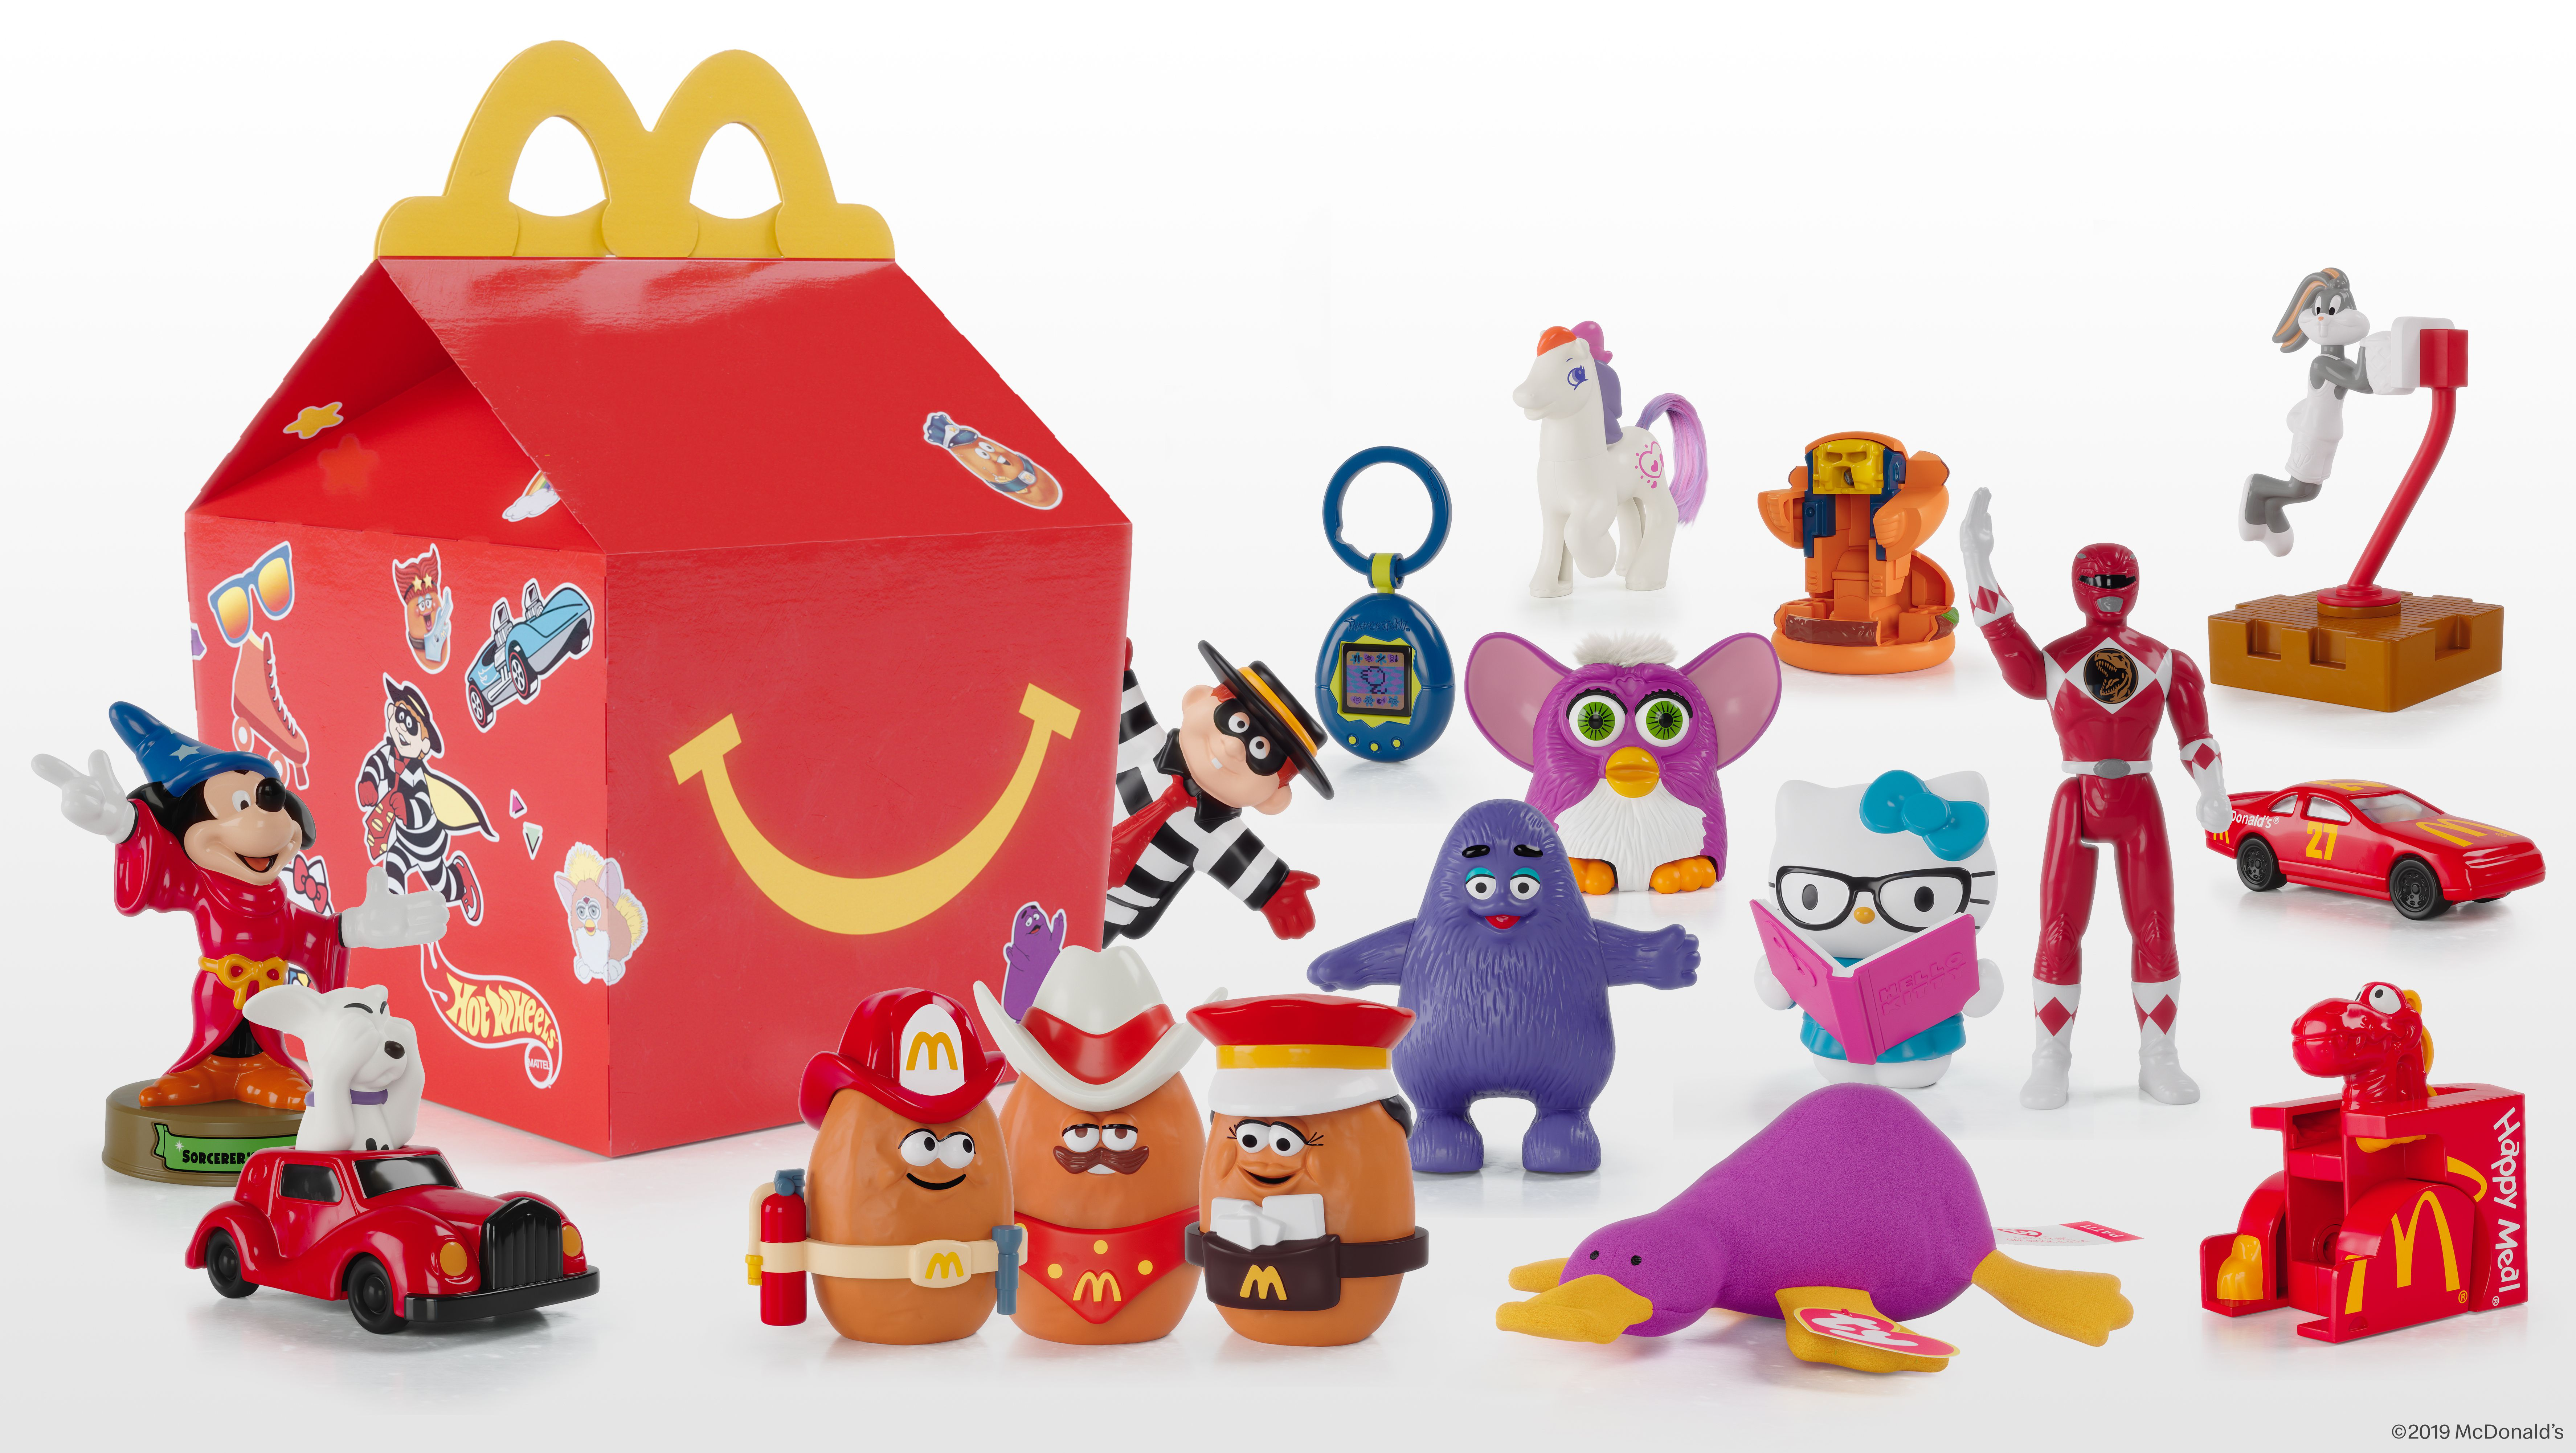 1988 McDonald/'s Happy Meal Food Changeables Toy Series 2 Set Boxes